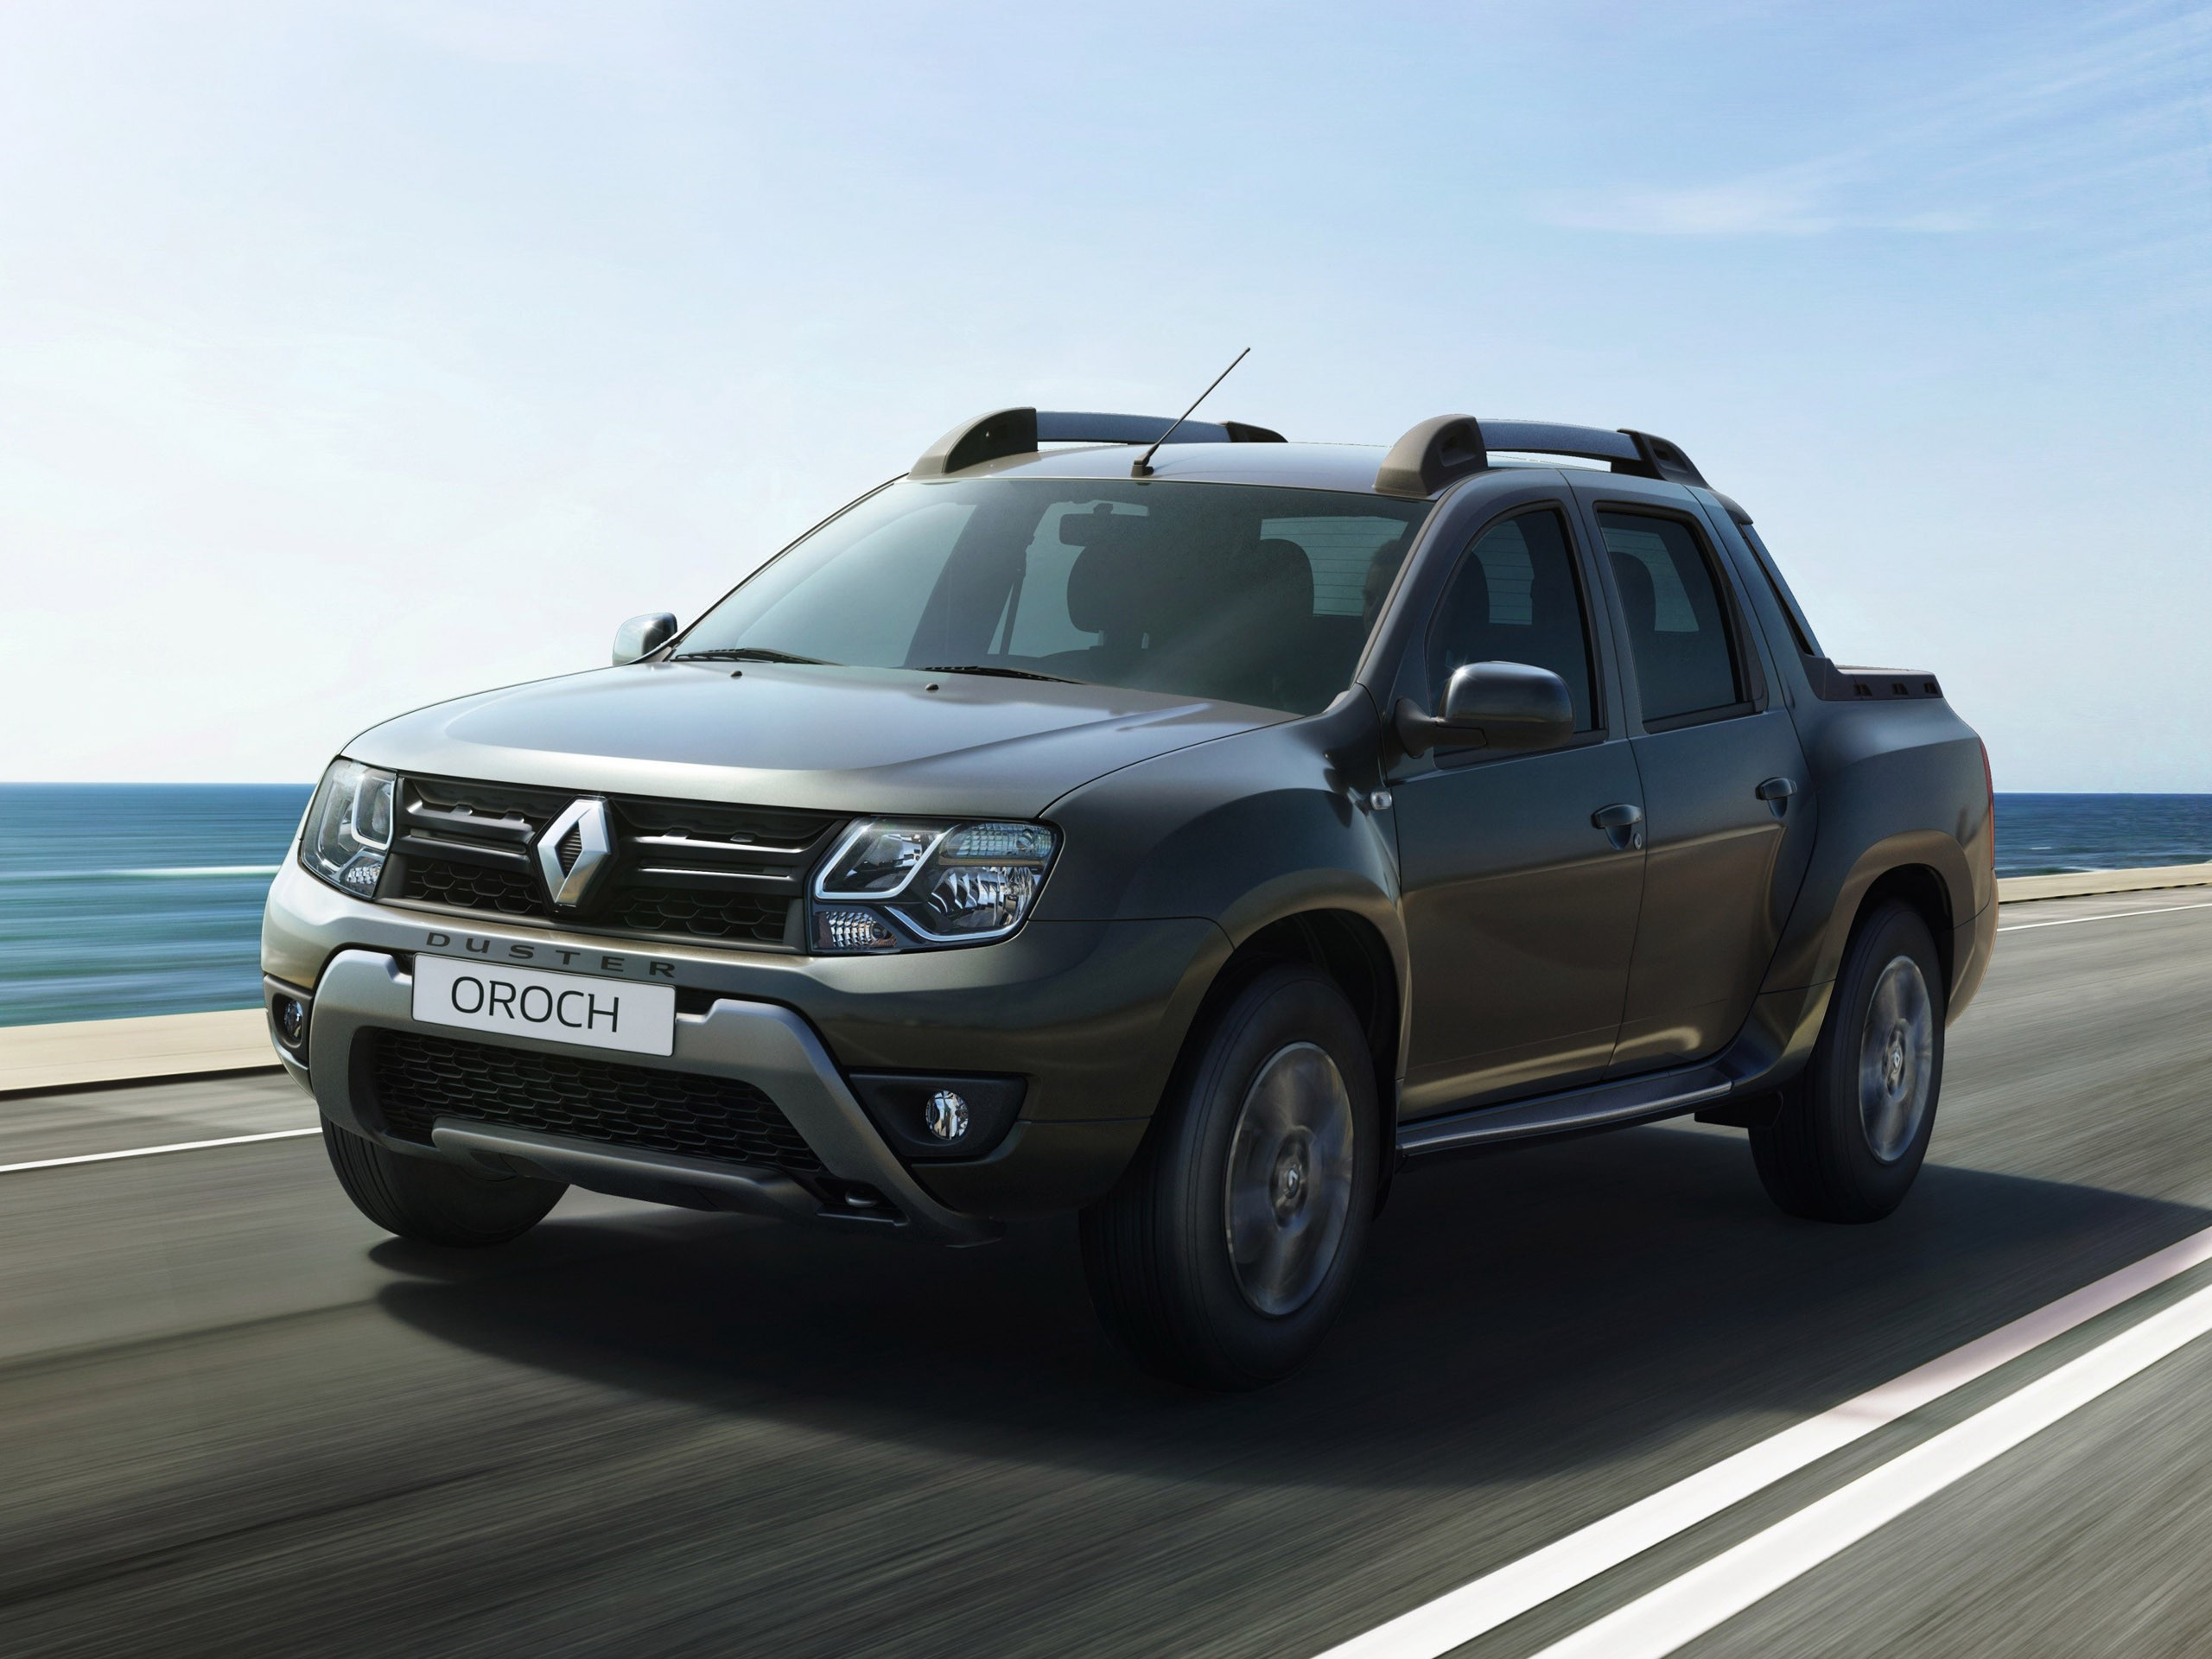 2015 Renault Duster Oroch Pick-up